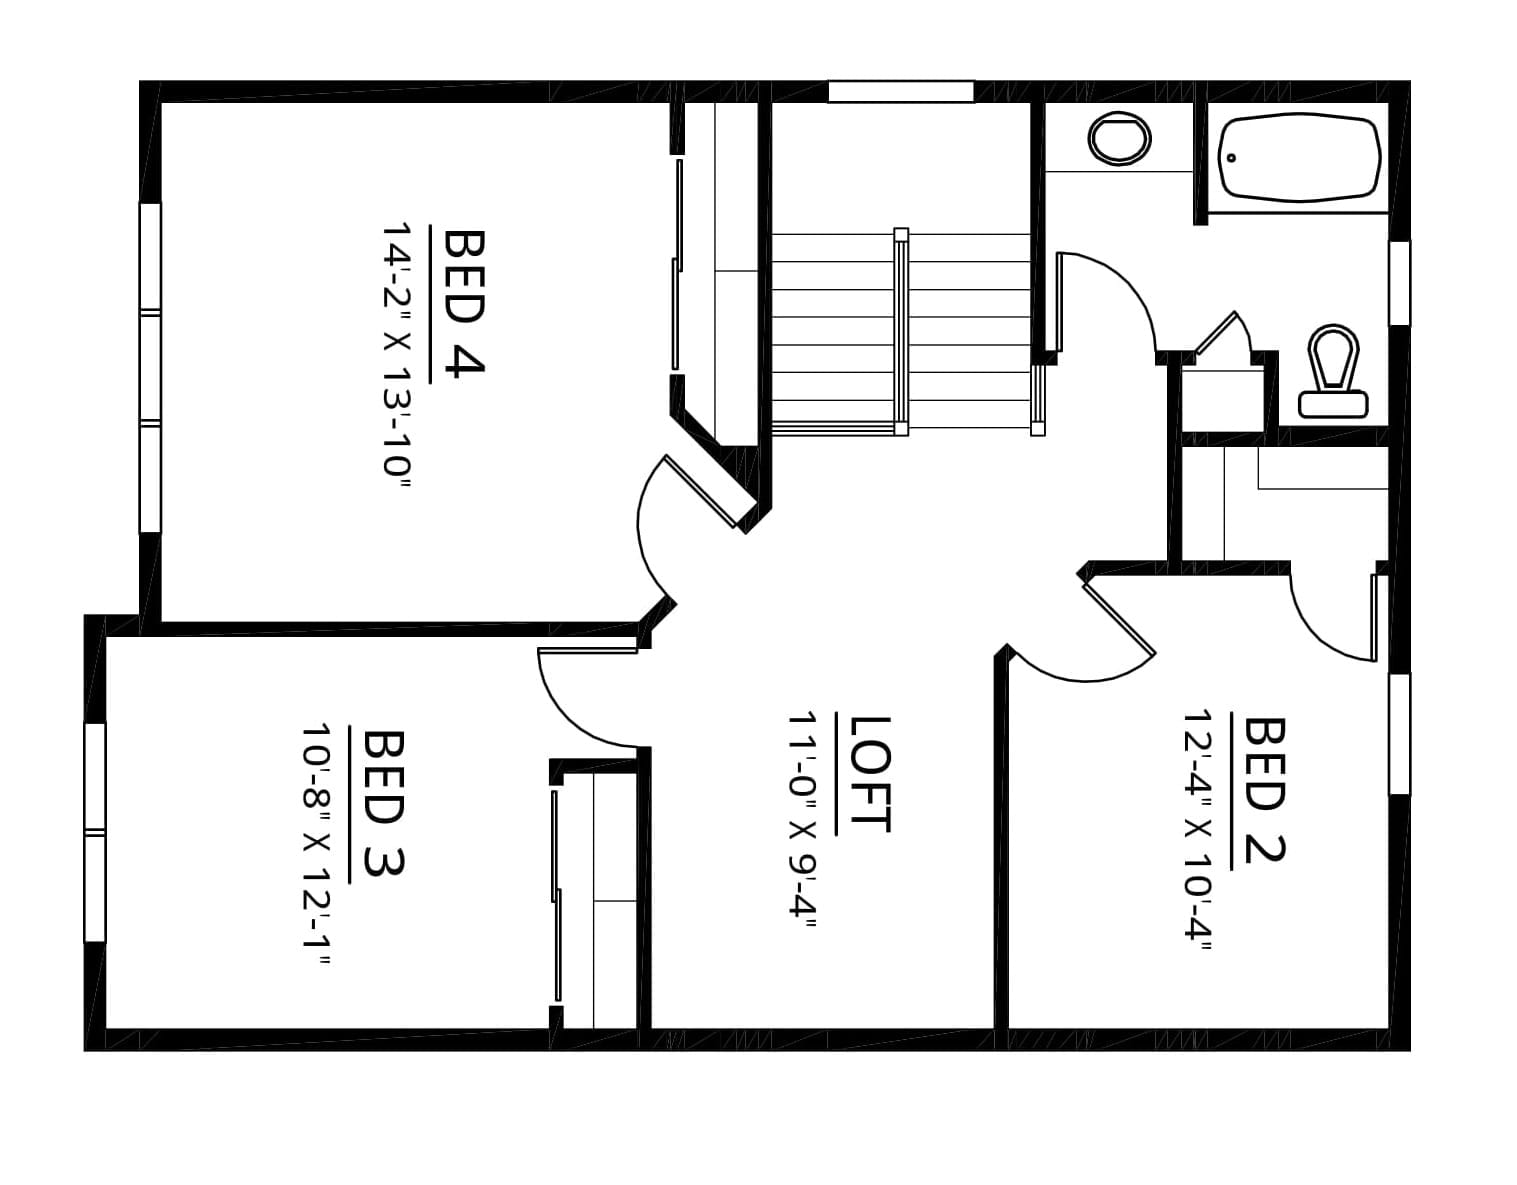 1500 Sq Ft Home Plans likewise One Bedroom One Bath House Plans besides Home Plans With Gourmet Kitchens moreover Peter Zumthor House Plan furthermore Country Cottage House Plans Simple Low Uk Small Designs French 9673caaf5189b268. on southern living idea house floor plans